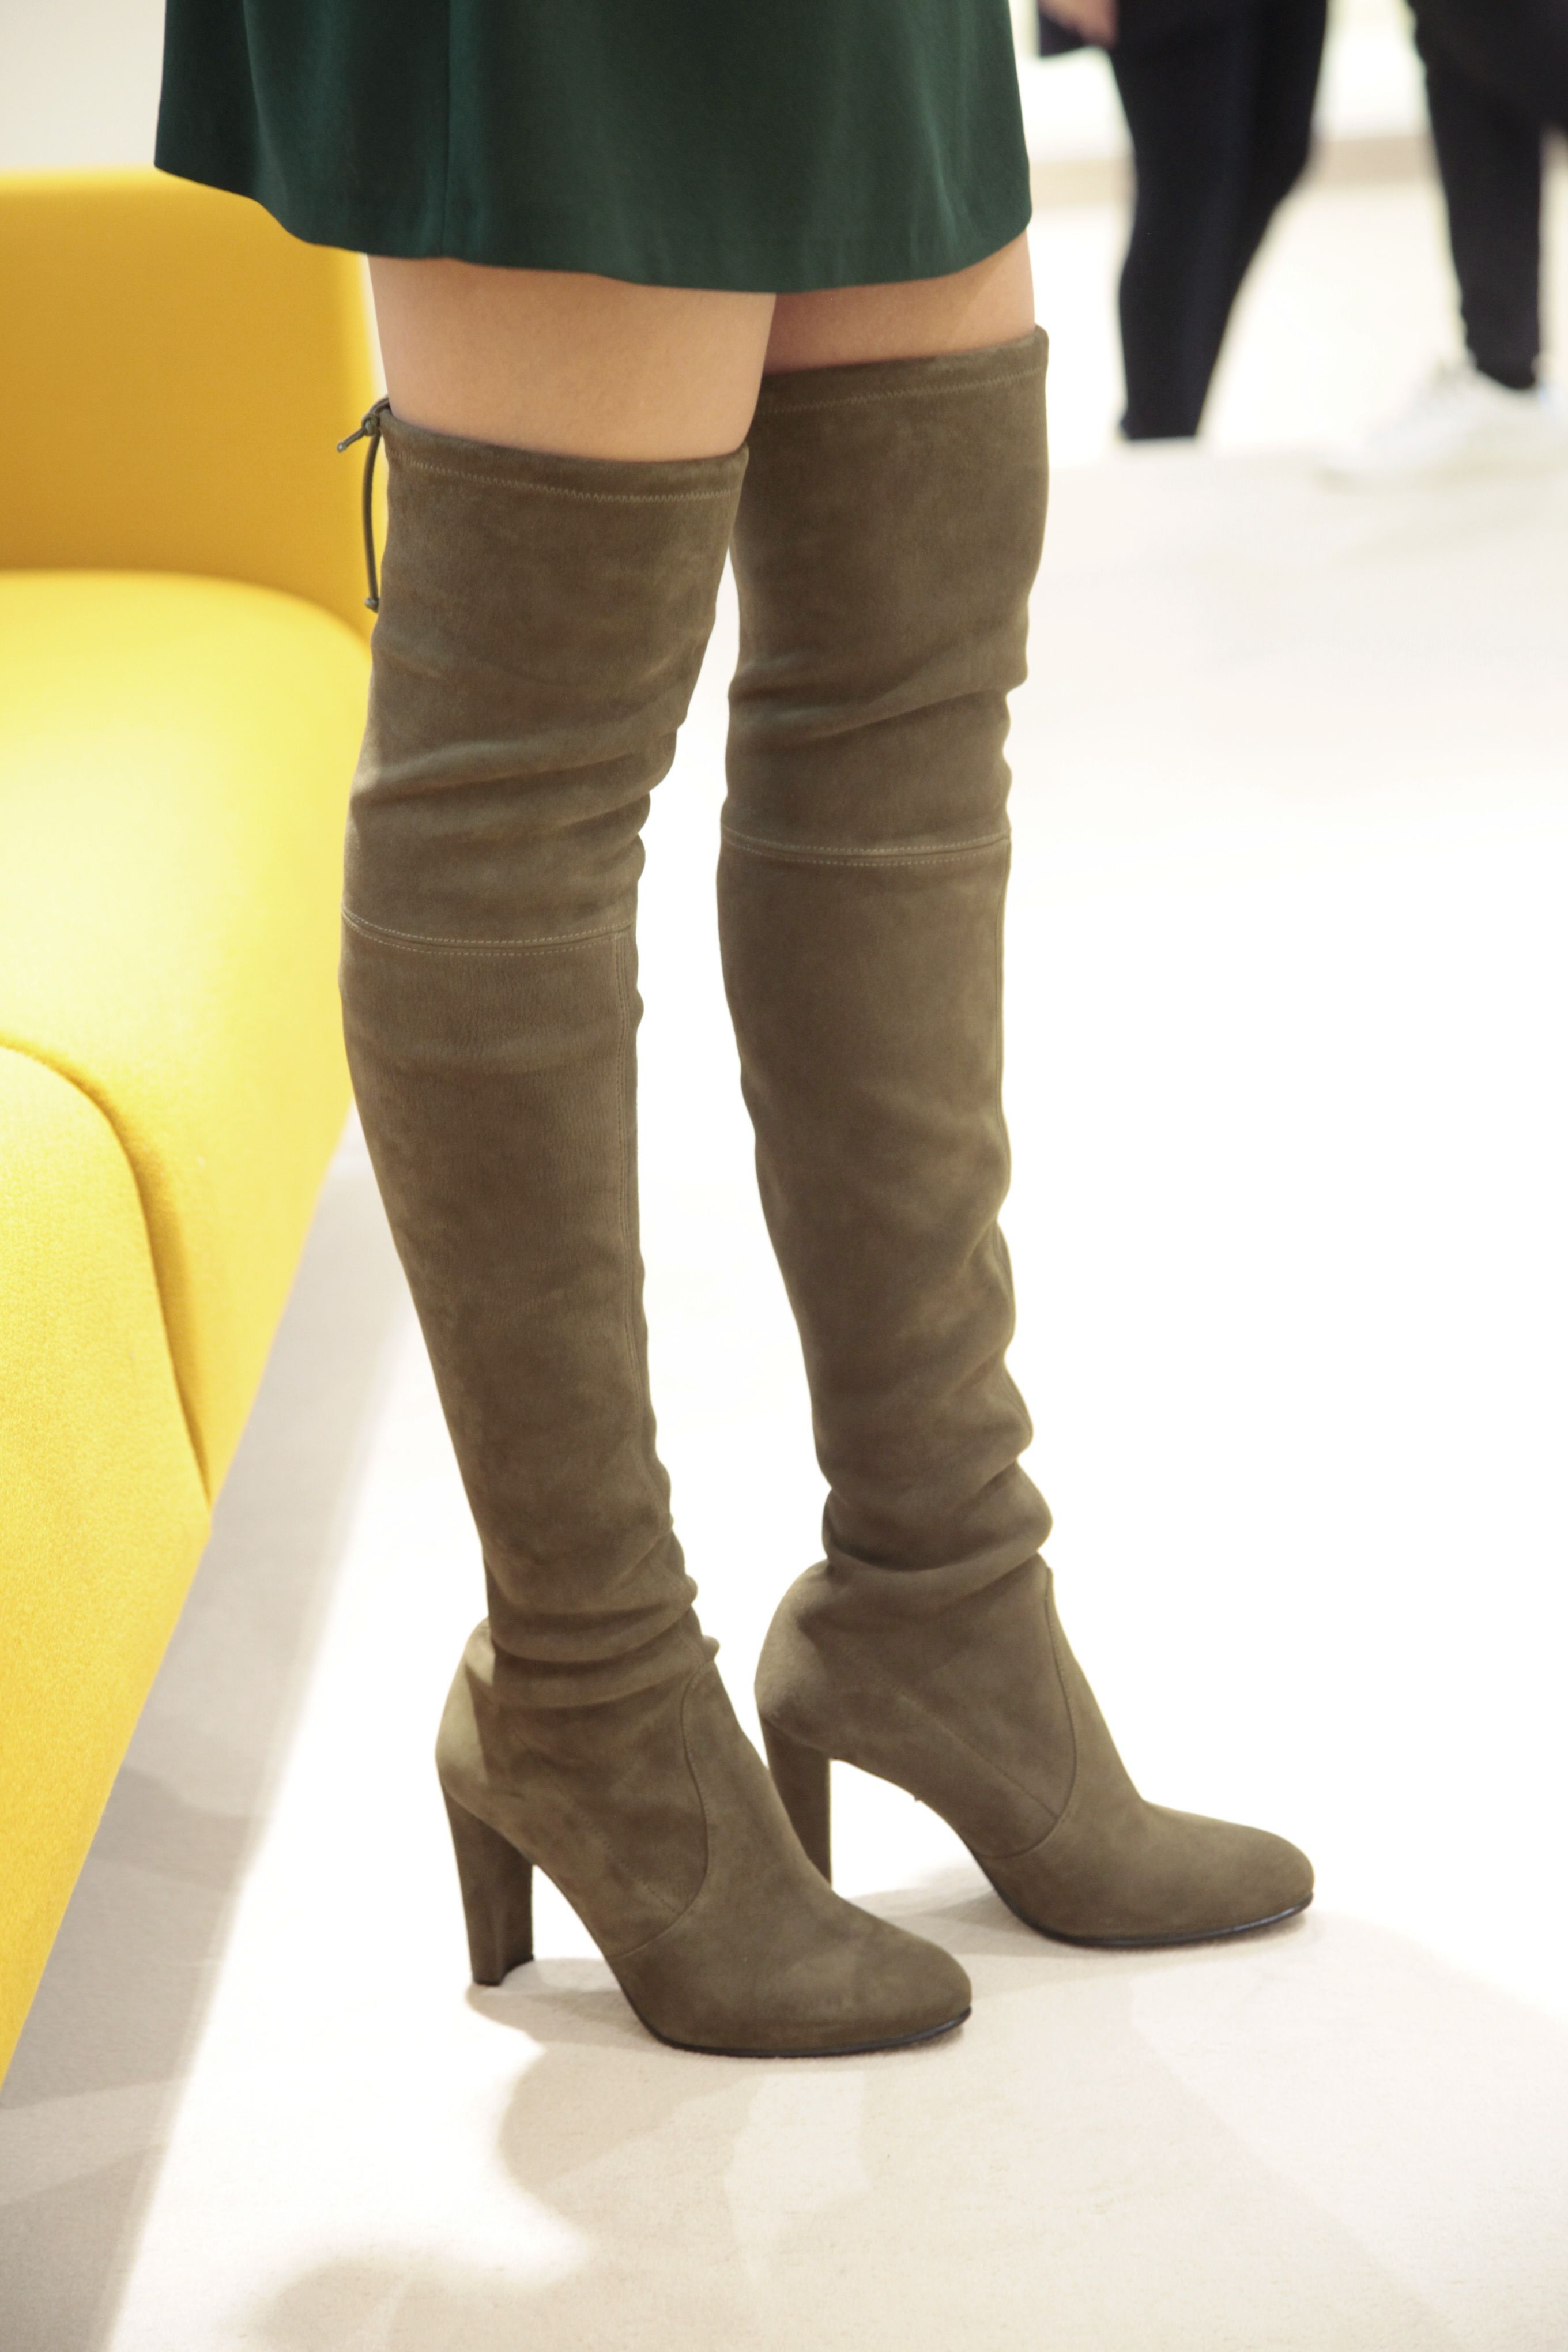 fc6d7e5980f9 Stuart Weitzman Highland boots in olive stretch suede. shop.wunderl ...